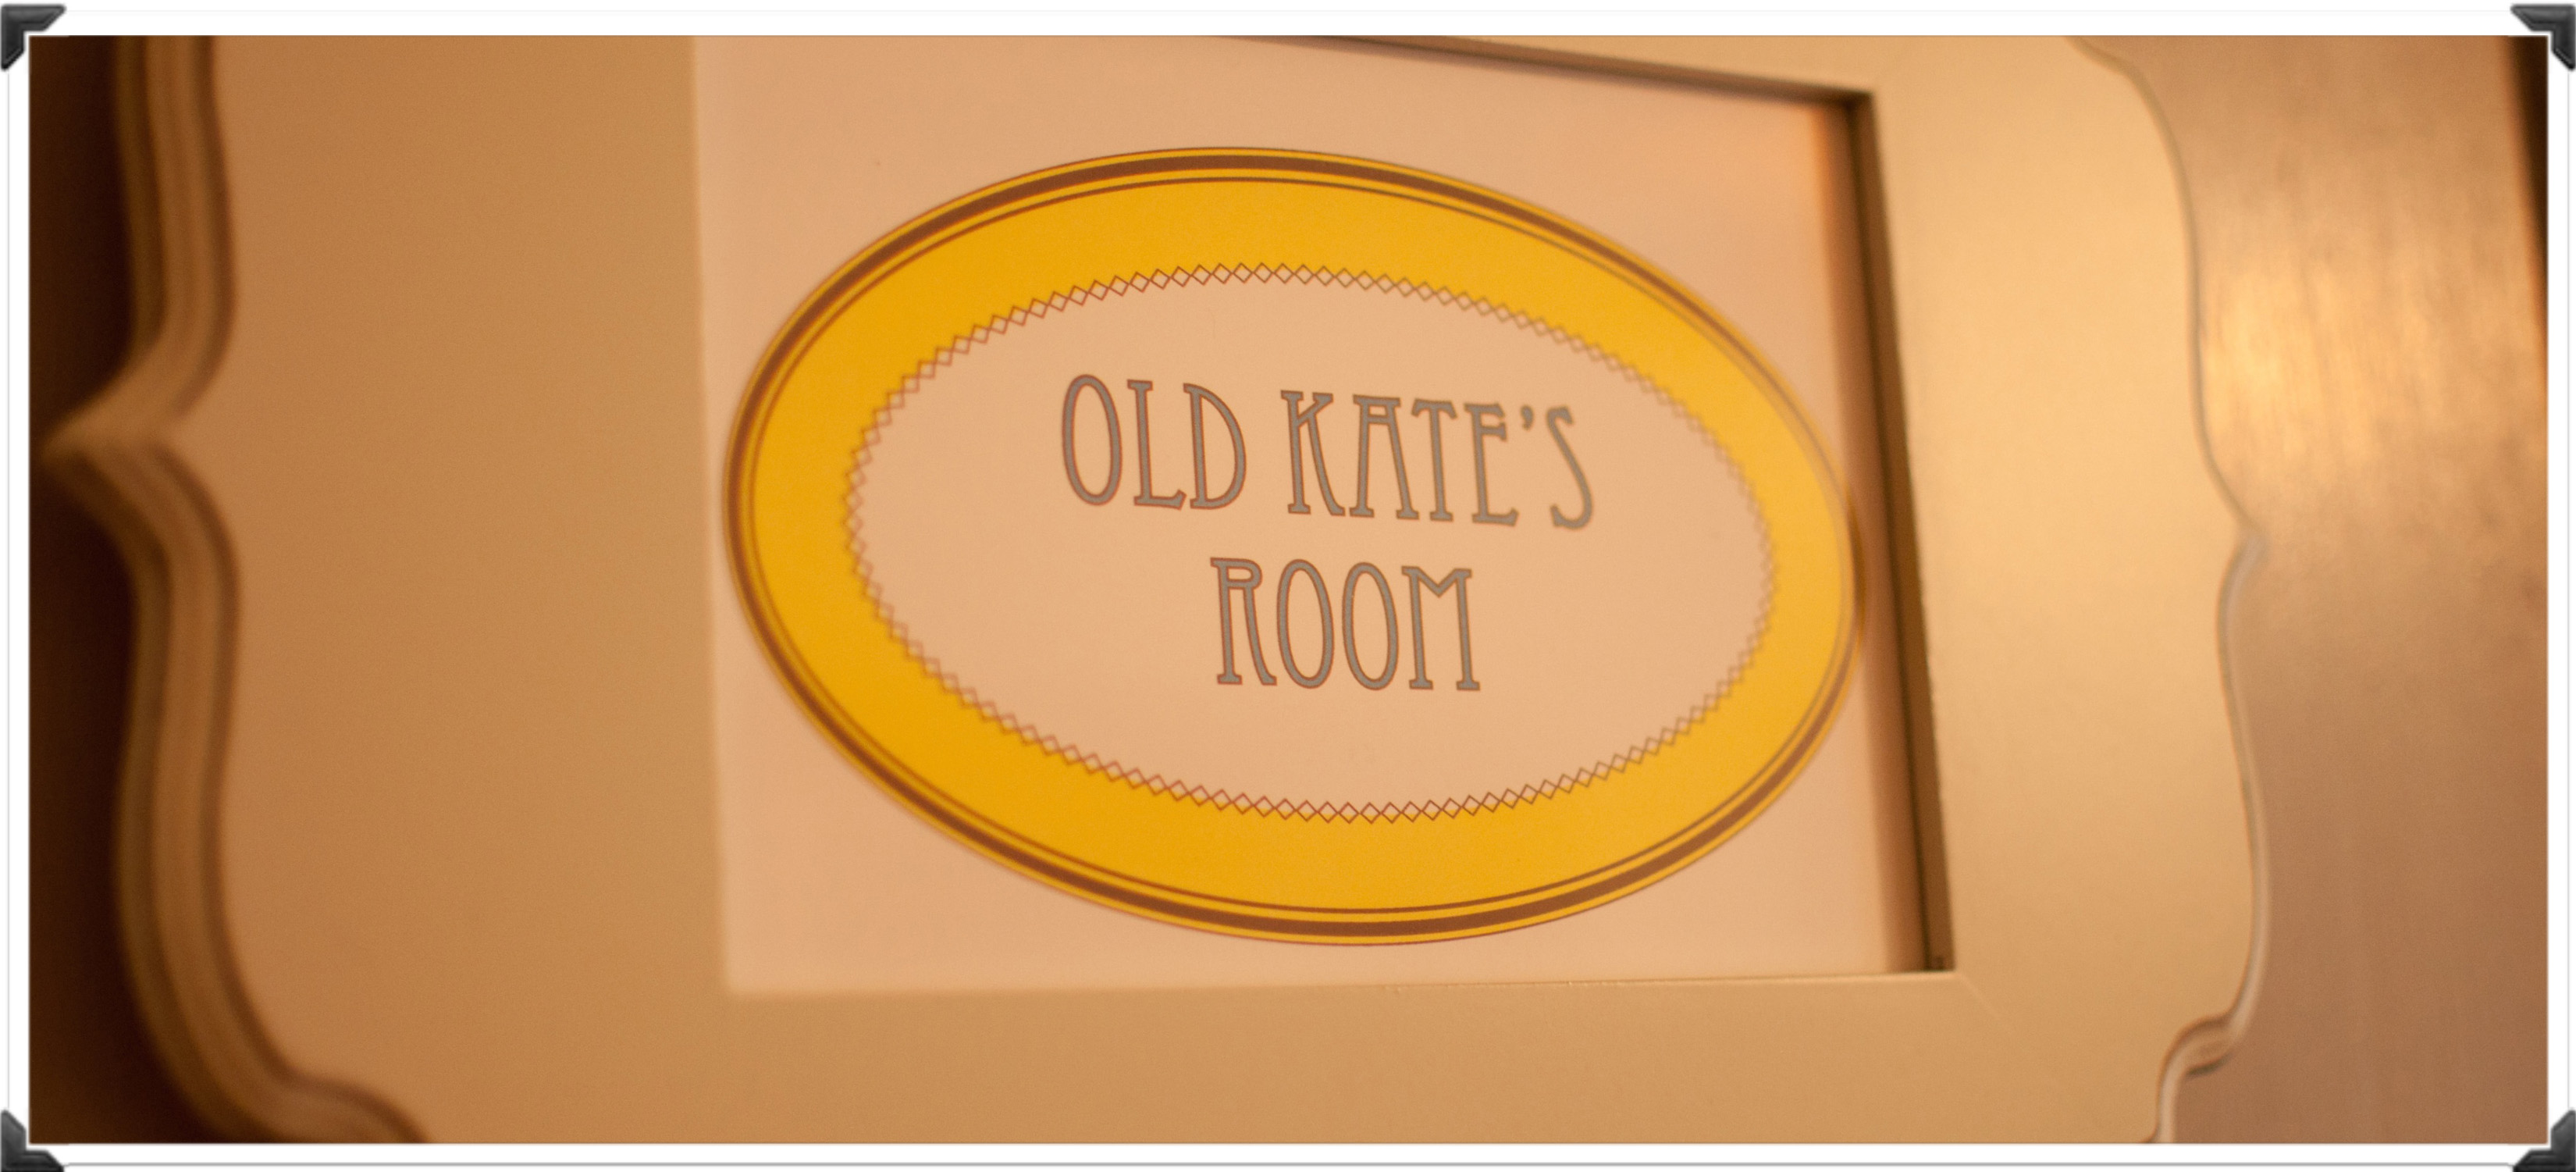 Old Kate S Room Kansas City Bed And Breakfast